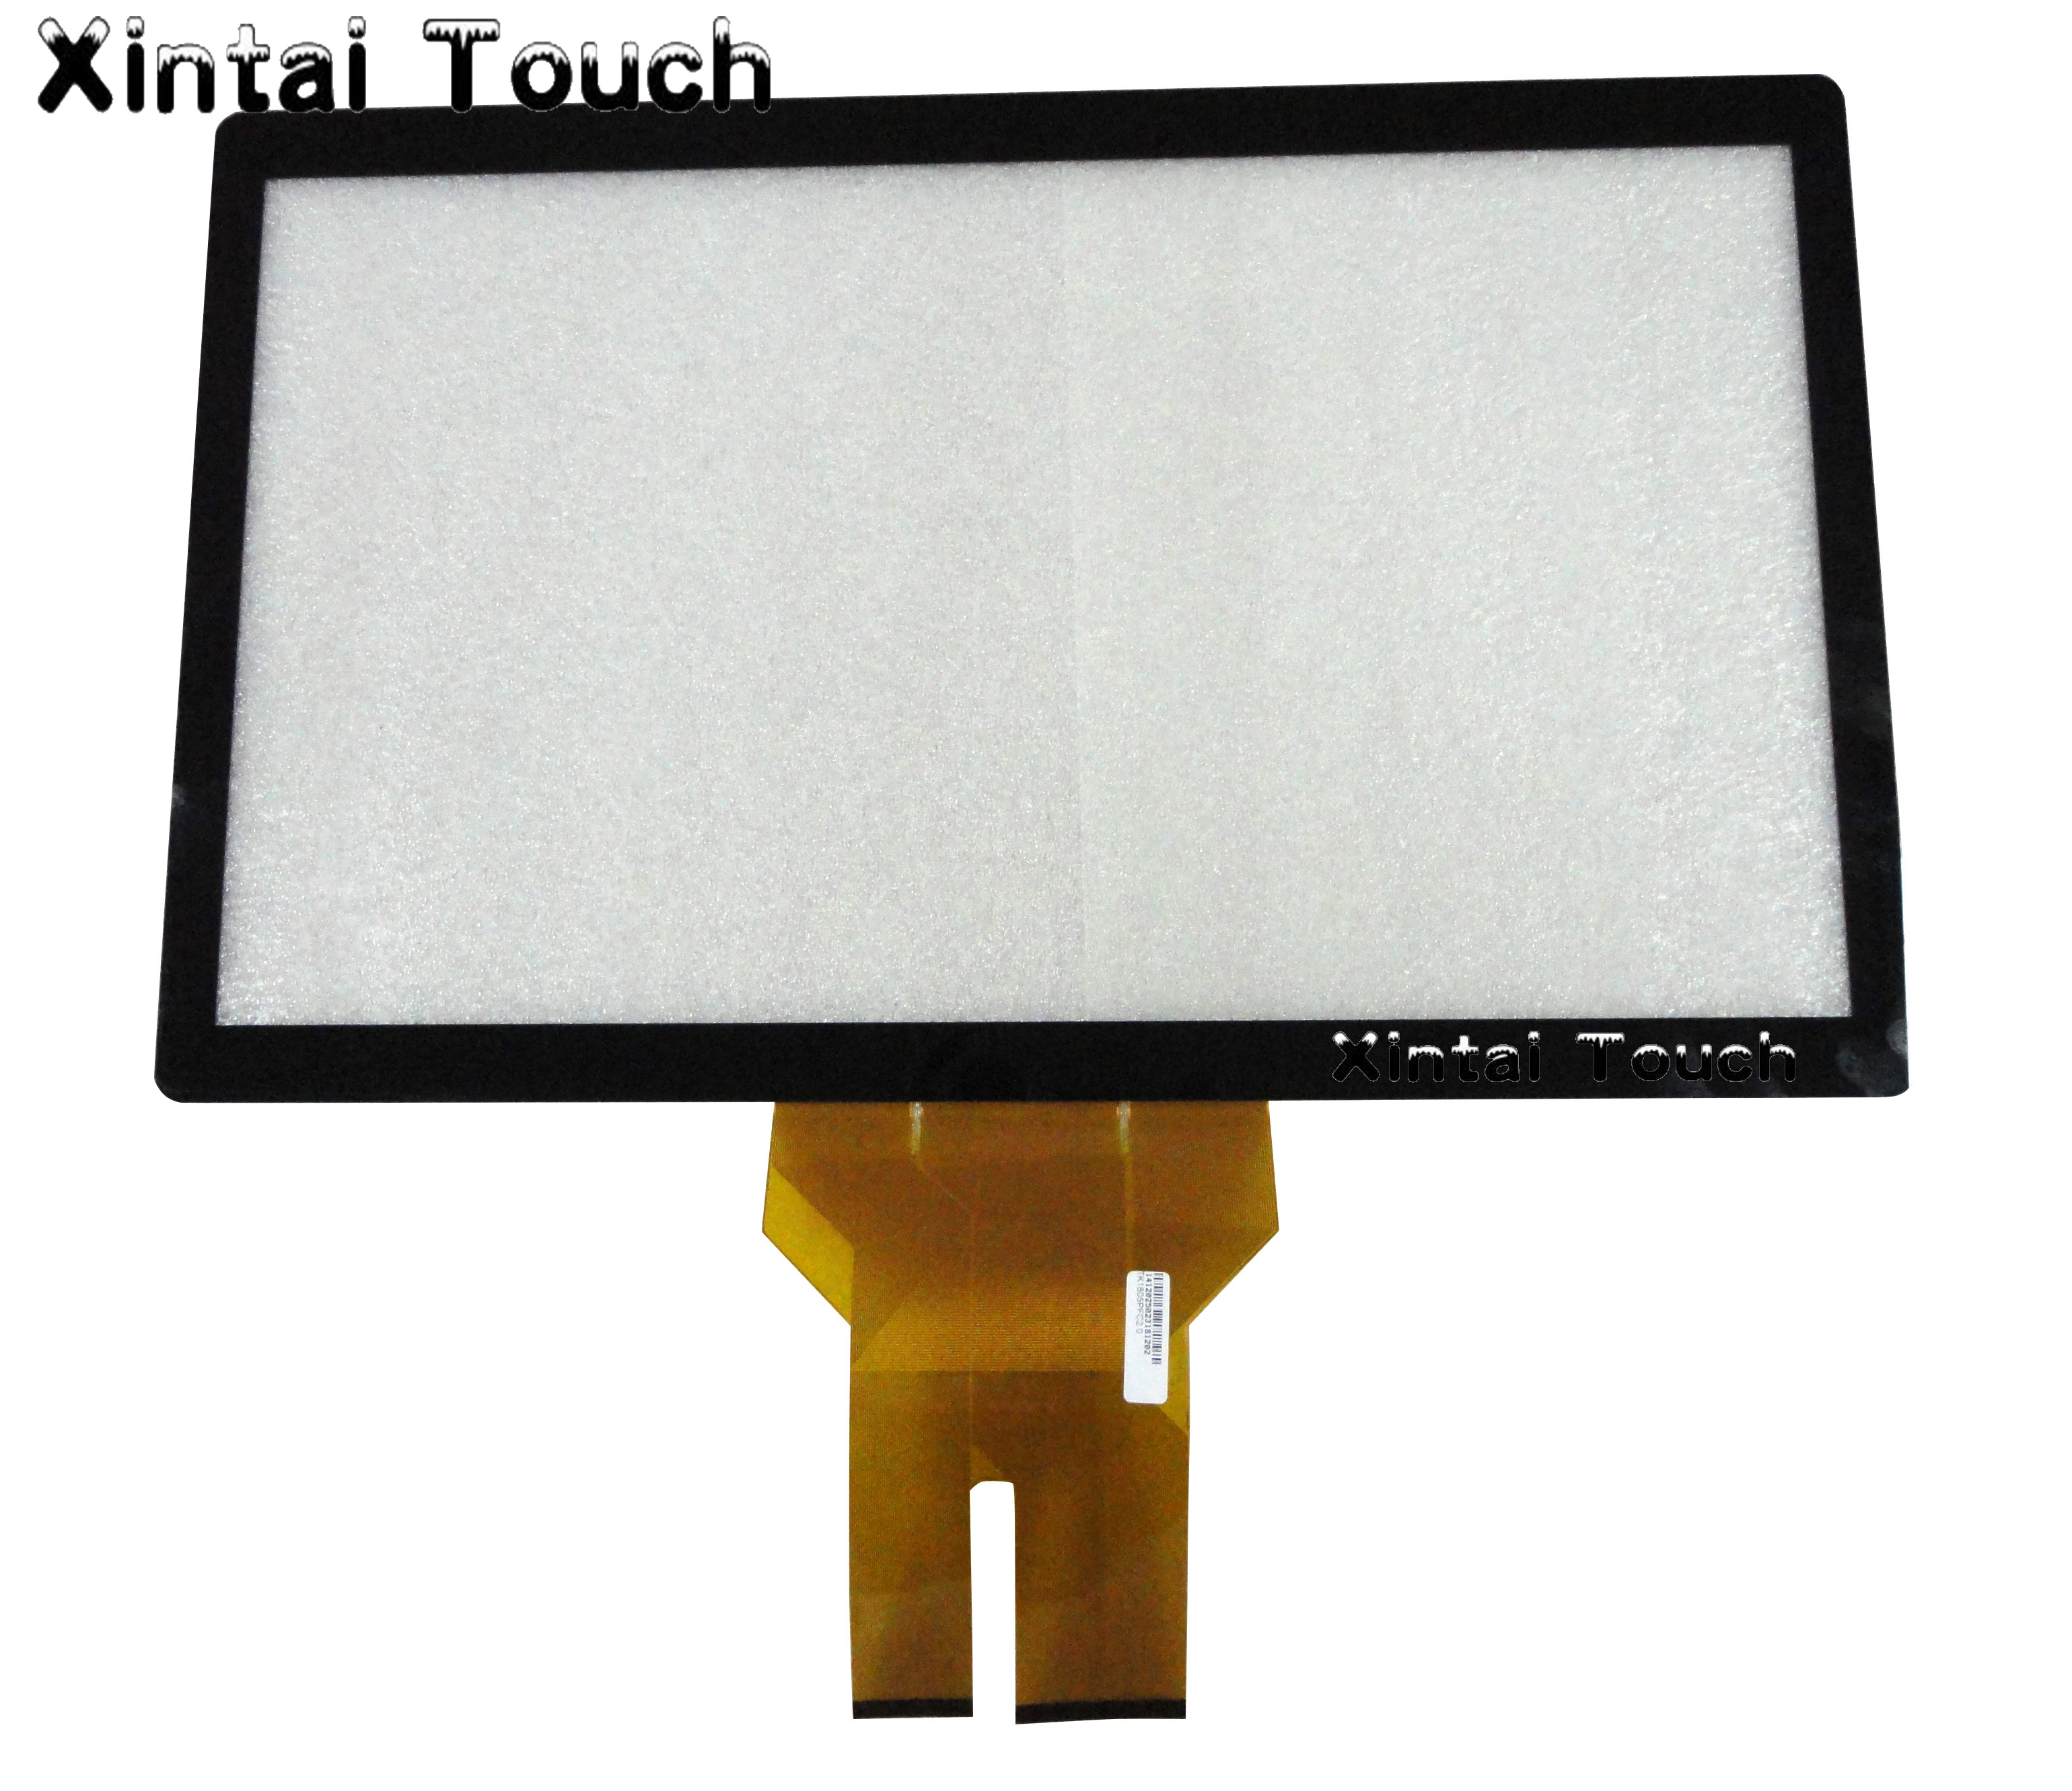 Low Price 19 inch Capacitive Touch Screen Panel Kit for Interactive Table, Interactive Wall, Multi Touch Screen, 4:3 fromat